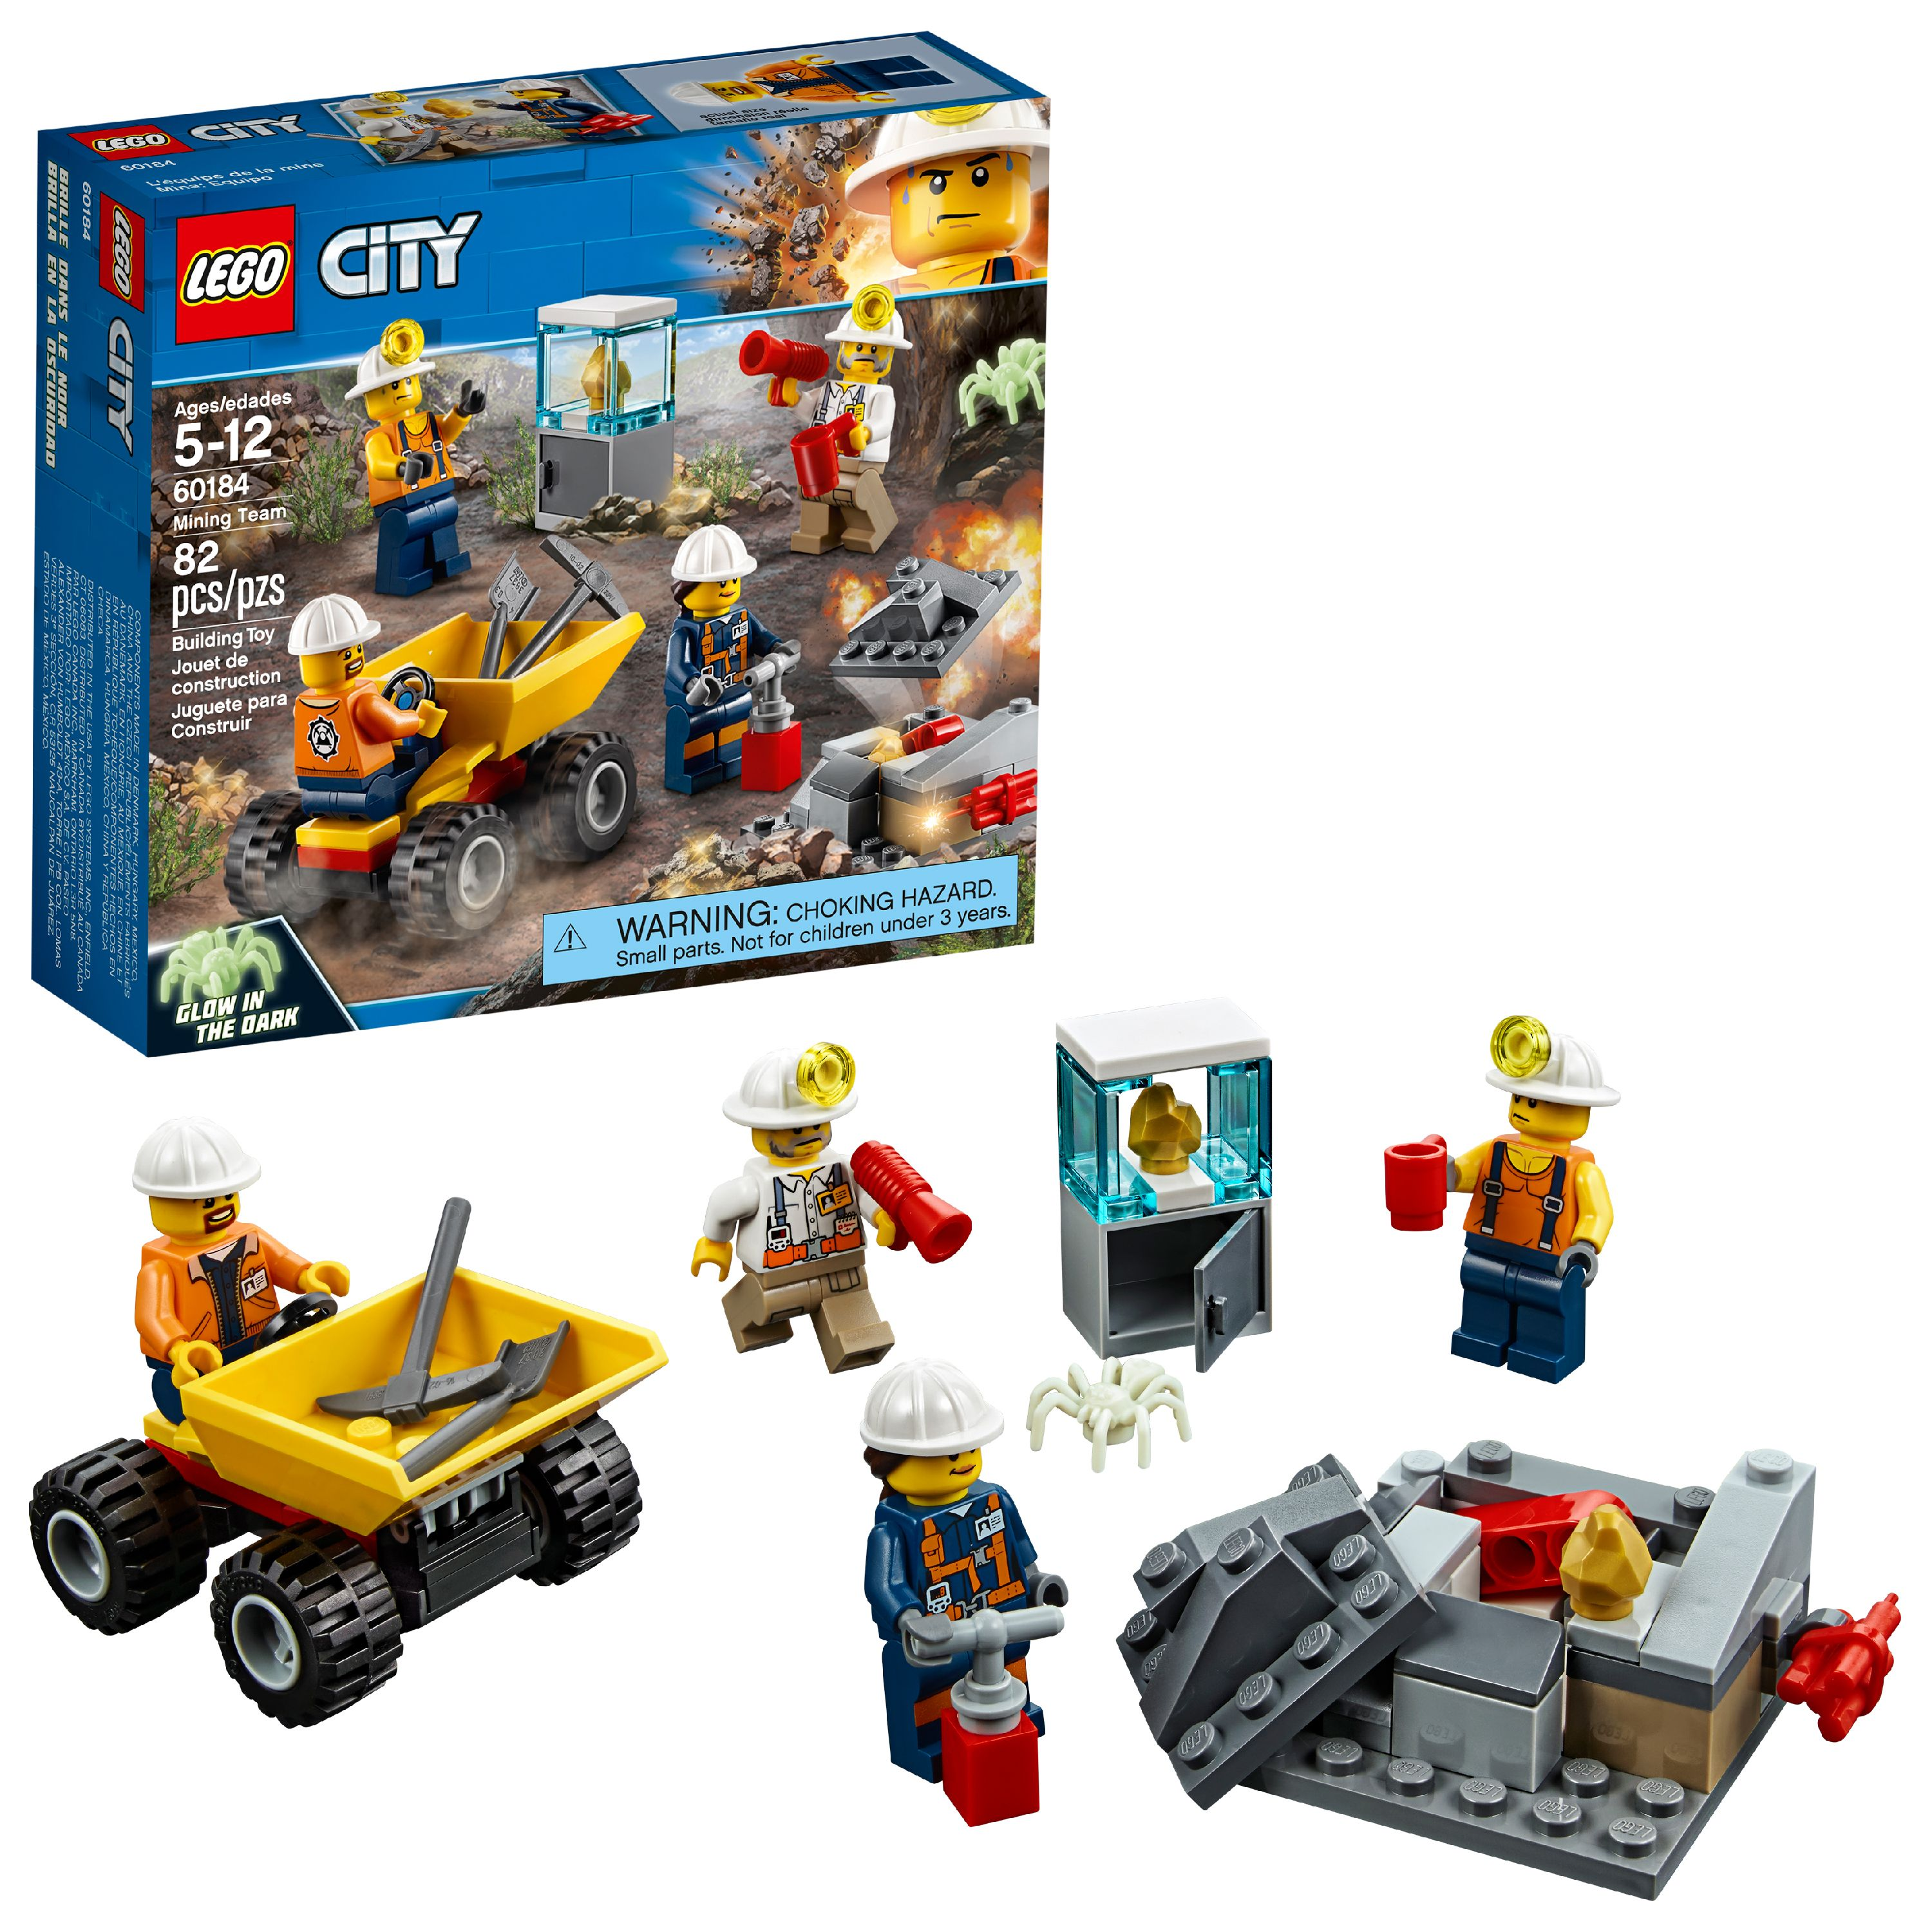 LEGO City Mining Team 60184 Building Set (82 Pieces)